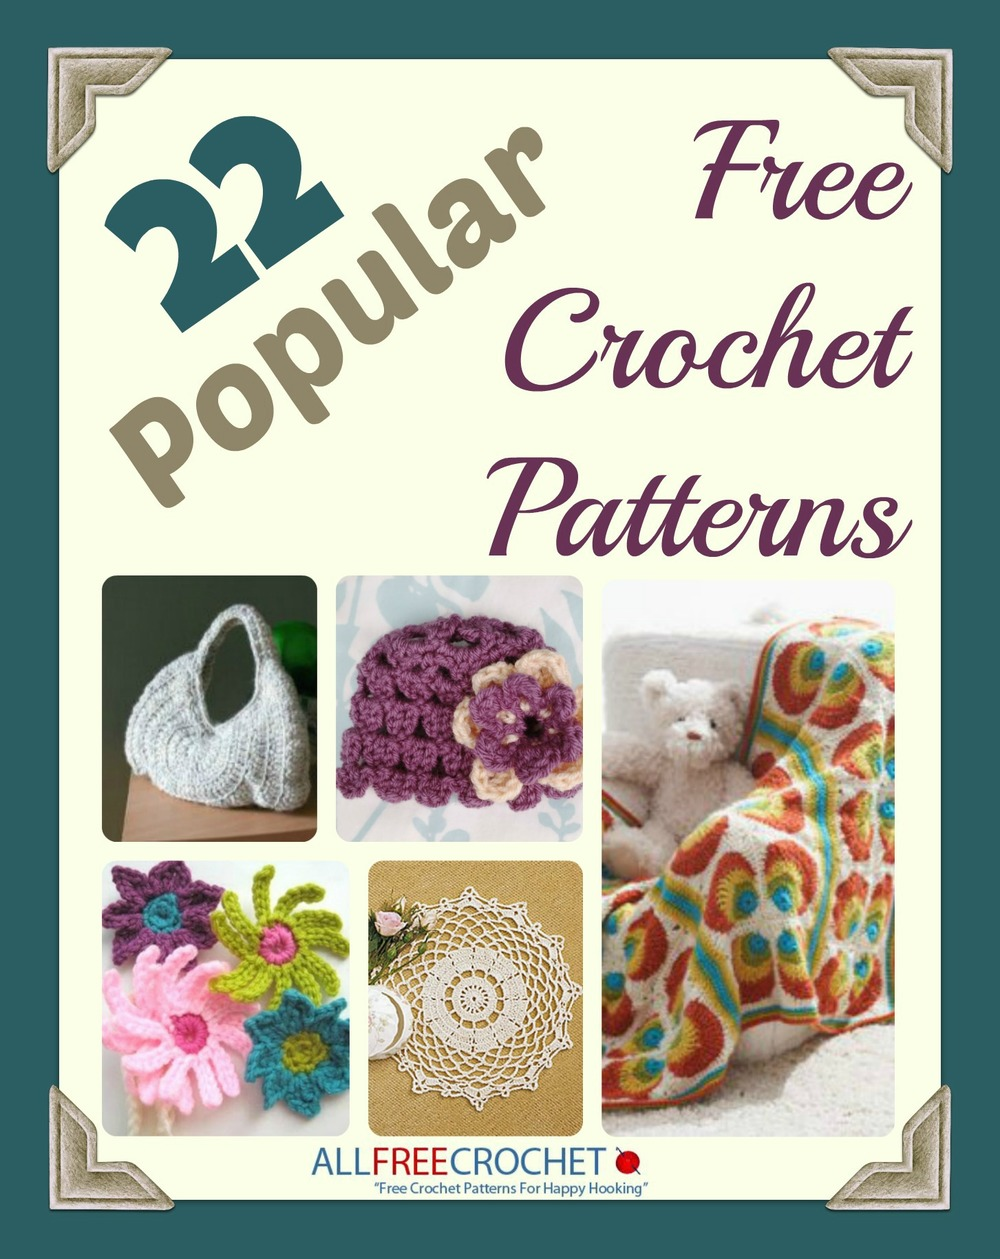 22 Popular Free Crochet Patterns Ebook Allfreecrochet Com